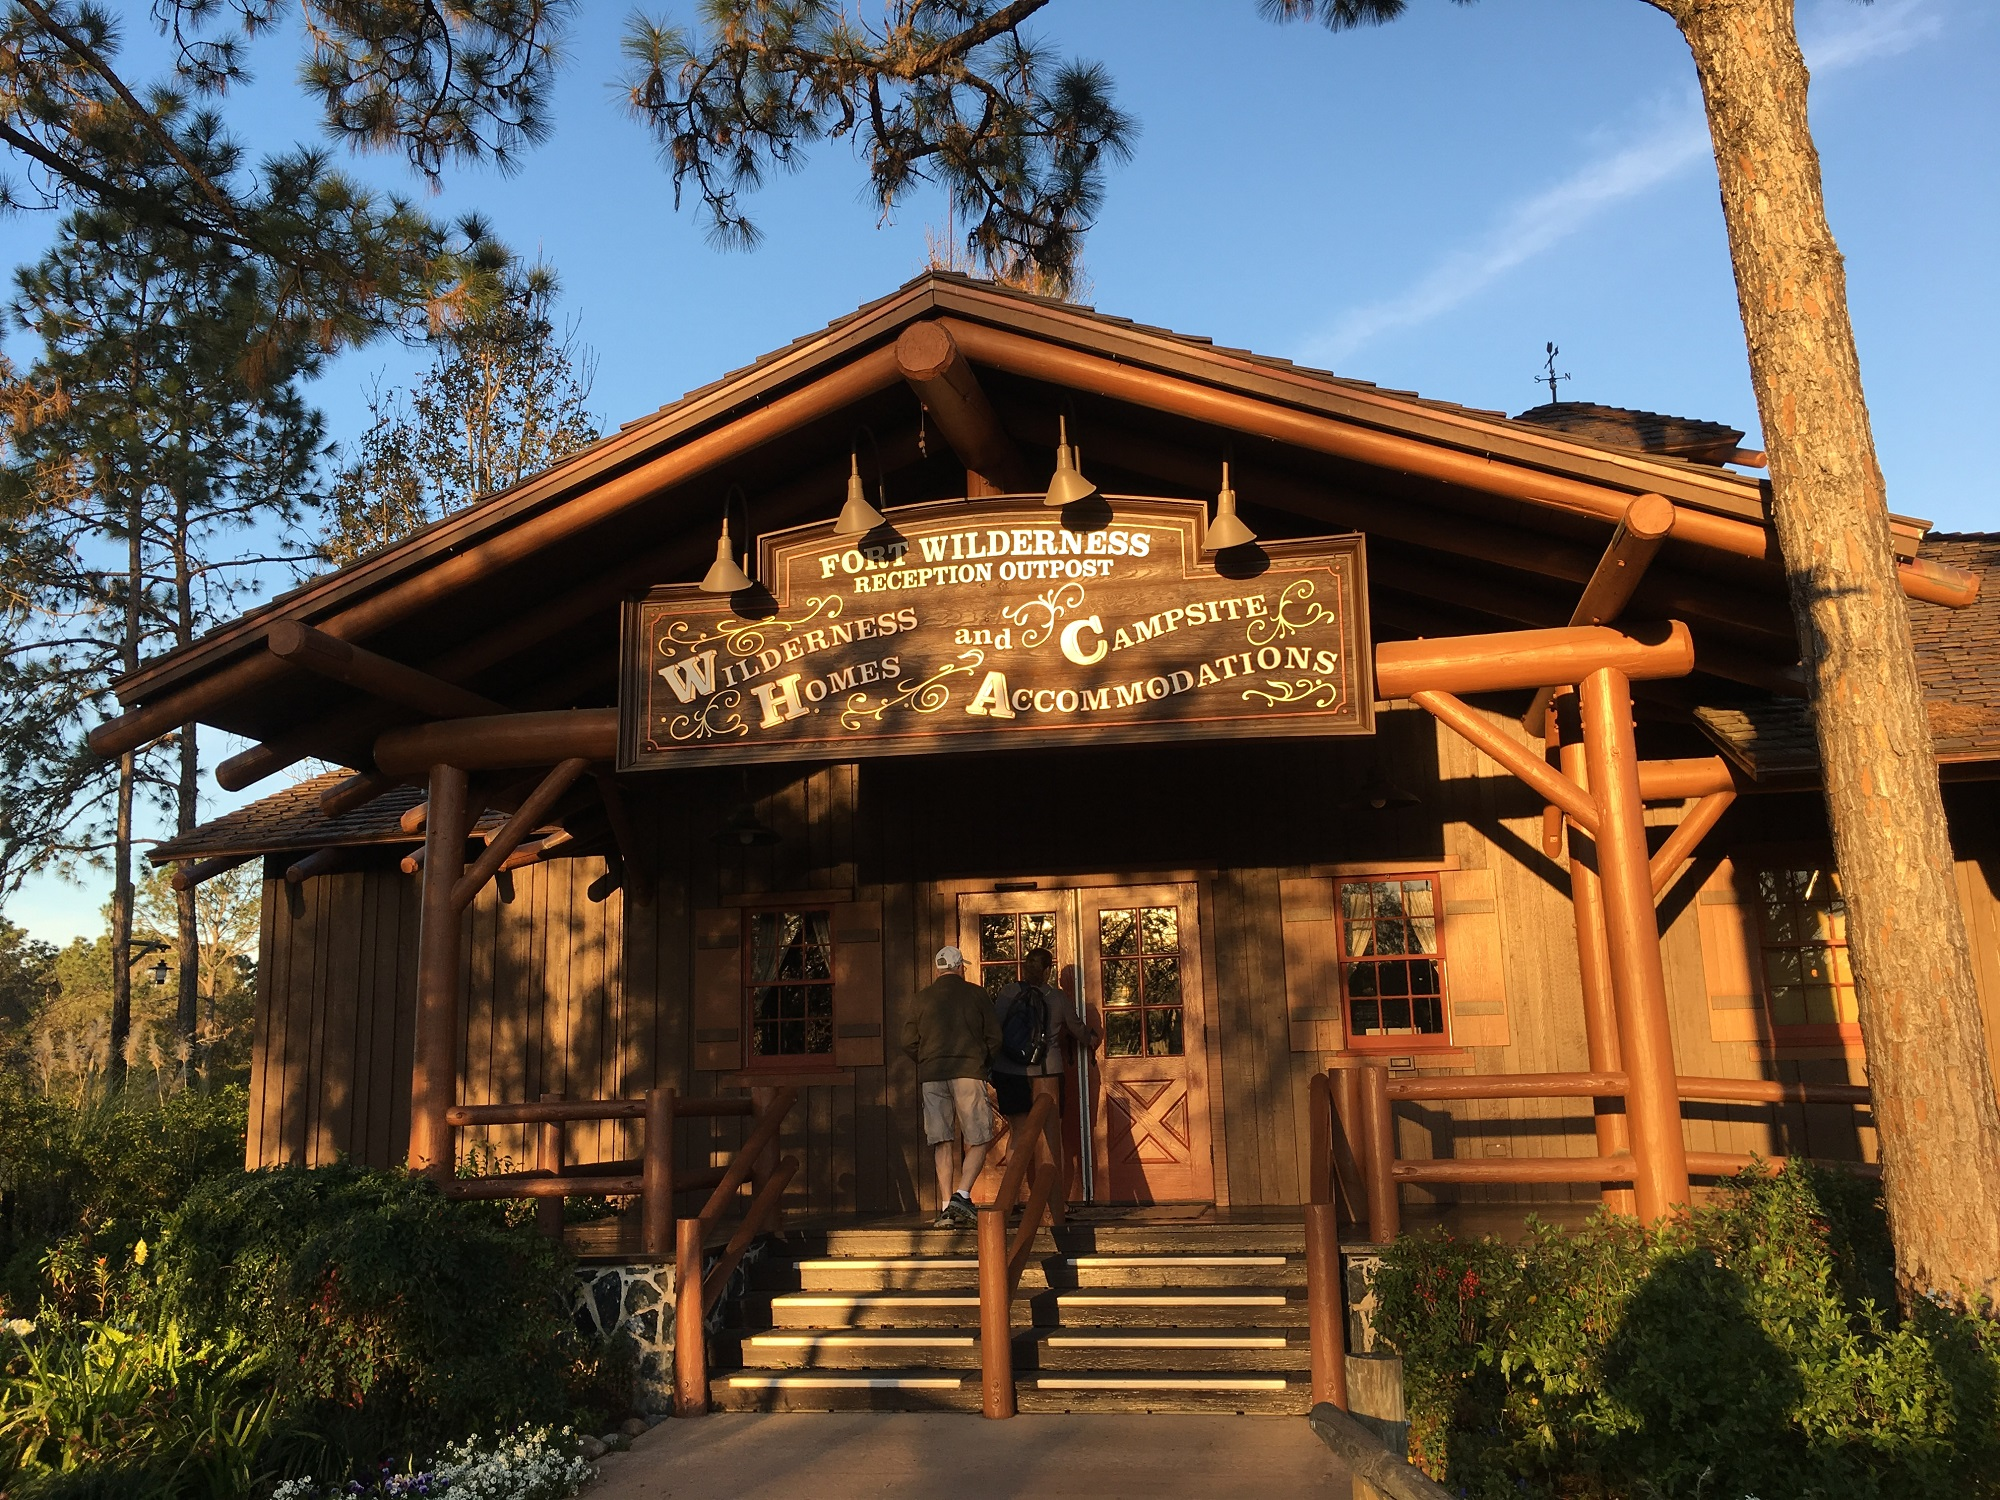 Fort Wilderness Hotel and Camp Site